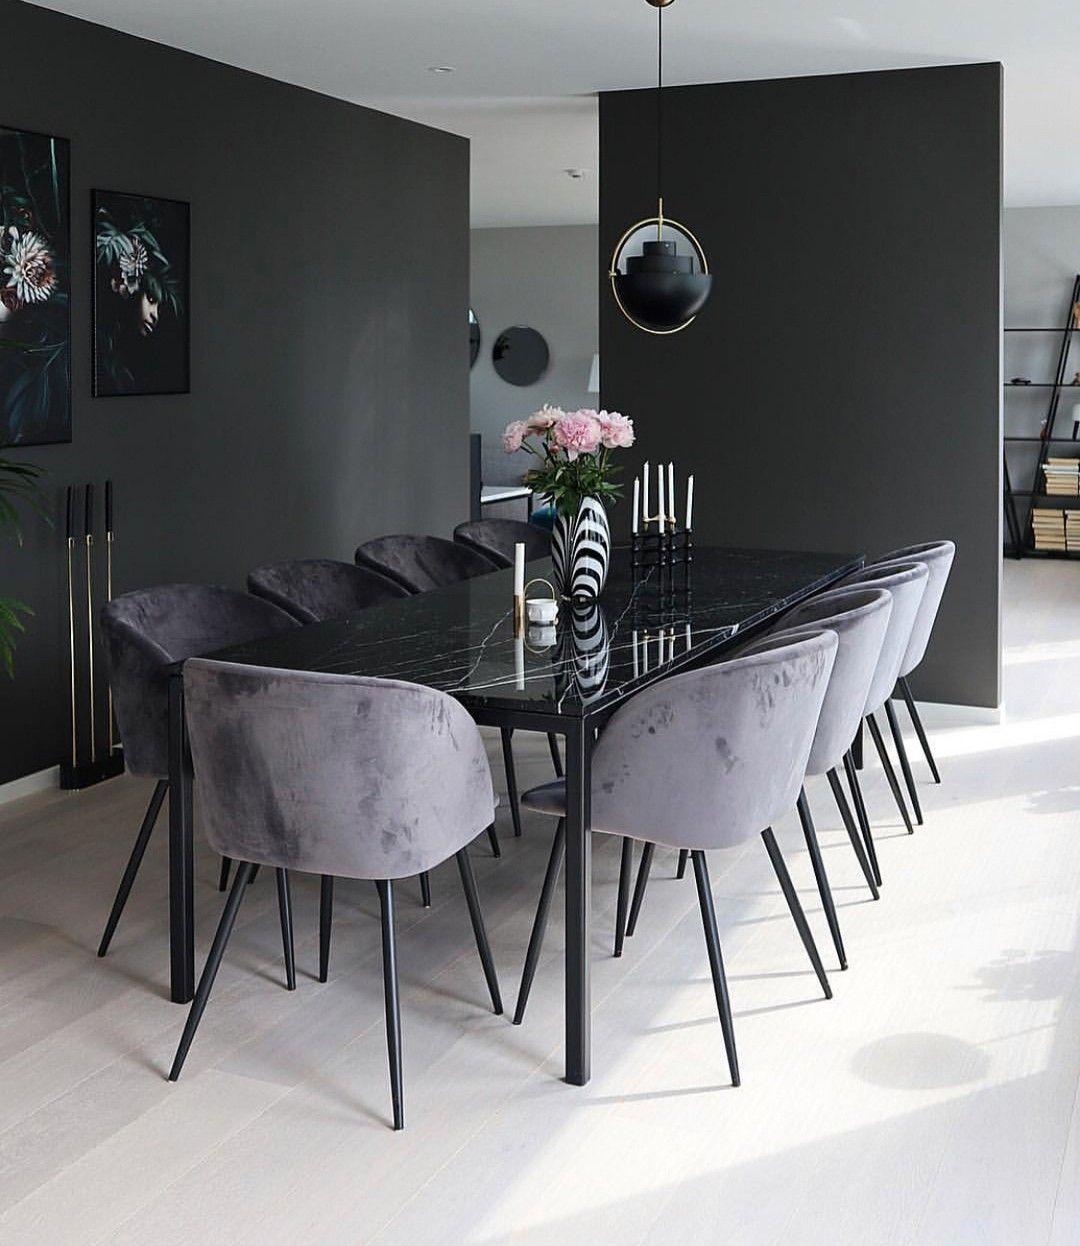 Marmer Eettafel Marmer Eettafel Interior I 2019 Home Decor Dining Room Design